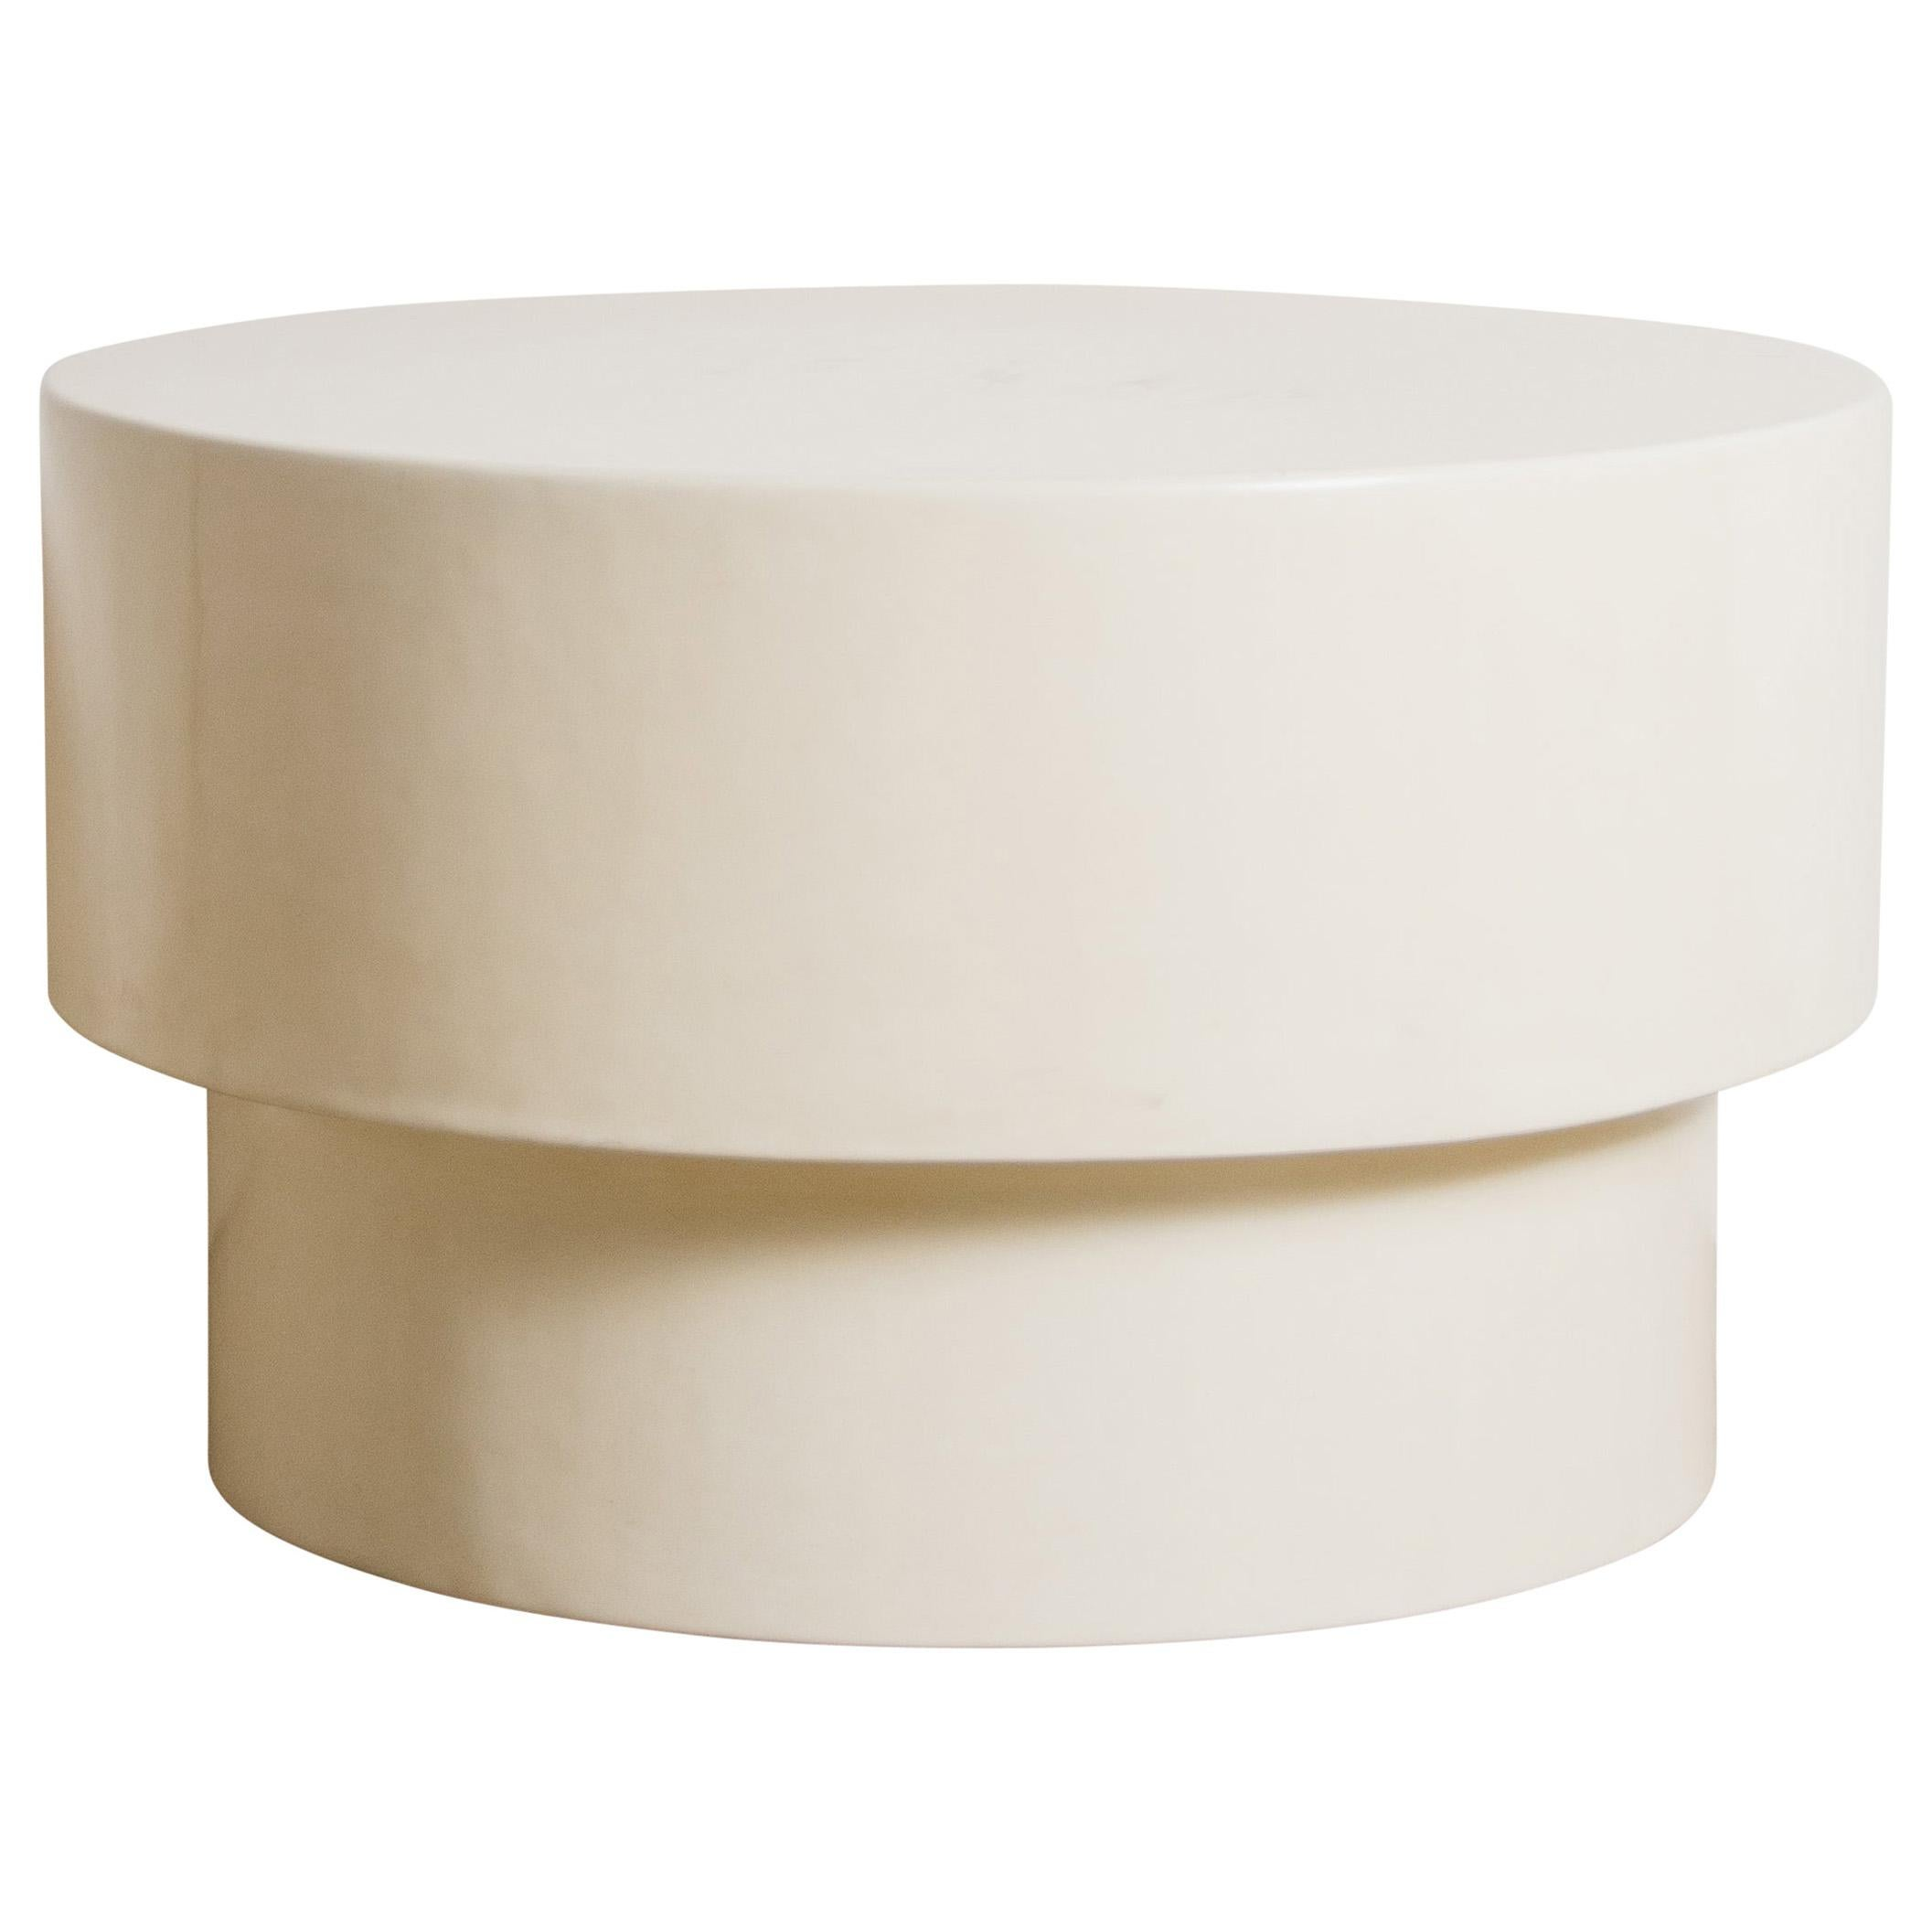 Drum Table, Cream Lacquer by Robert Kuo, Handmade, Limited Edition